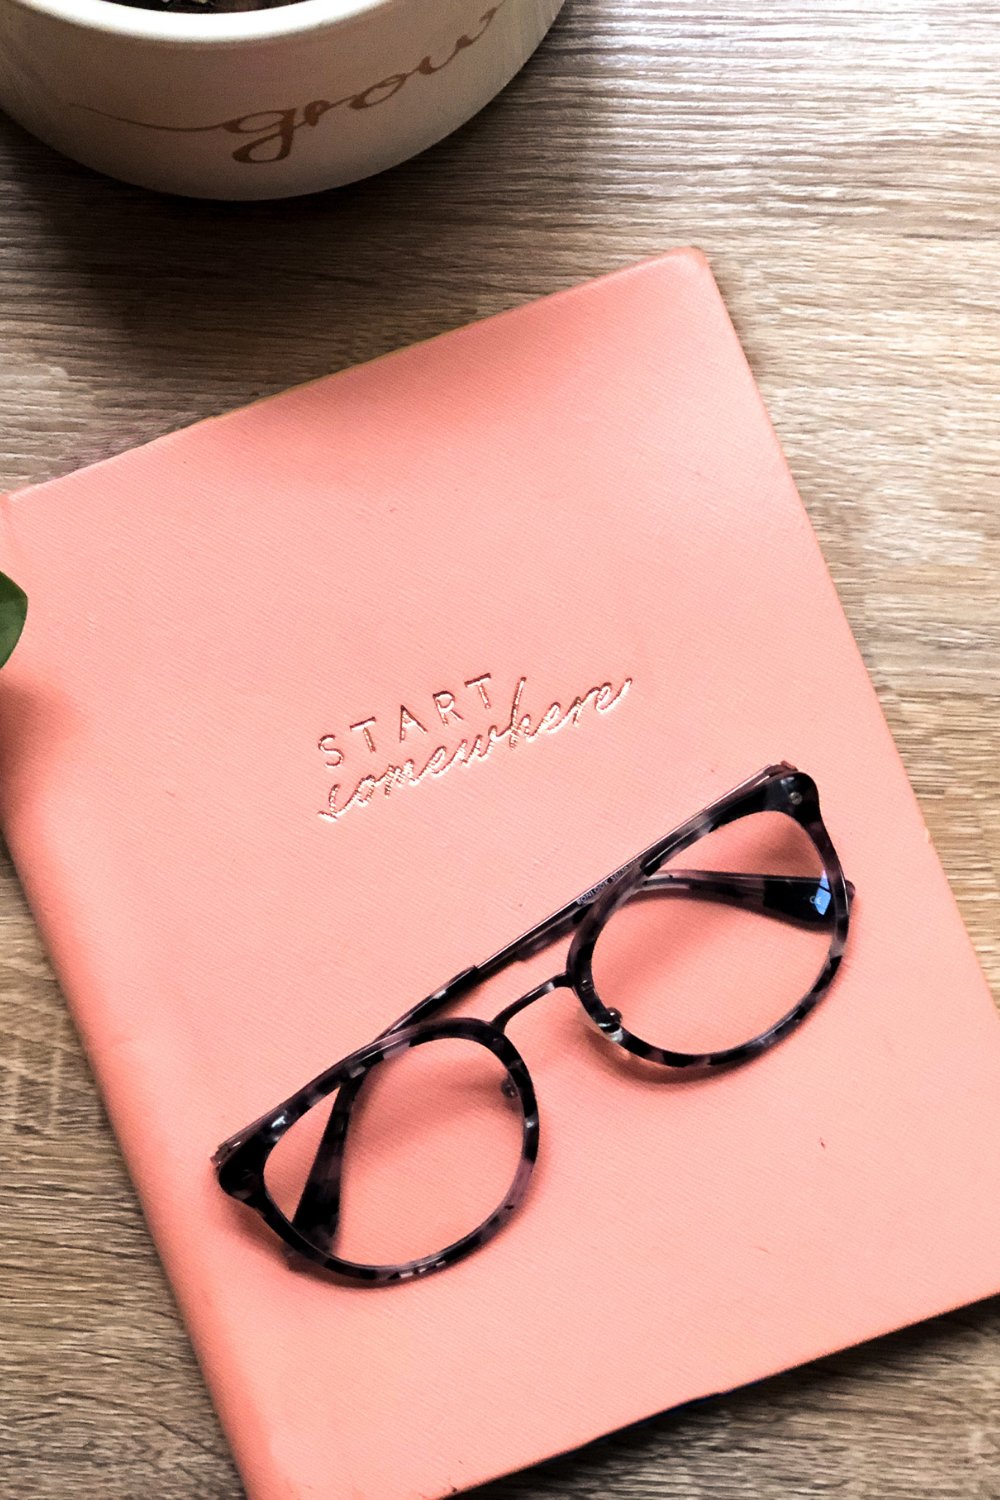 Fitness Journal with glasses